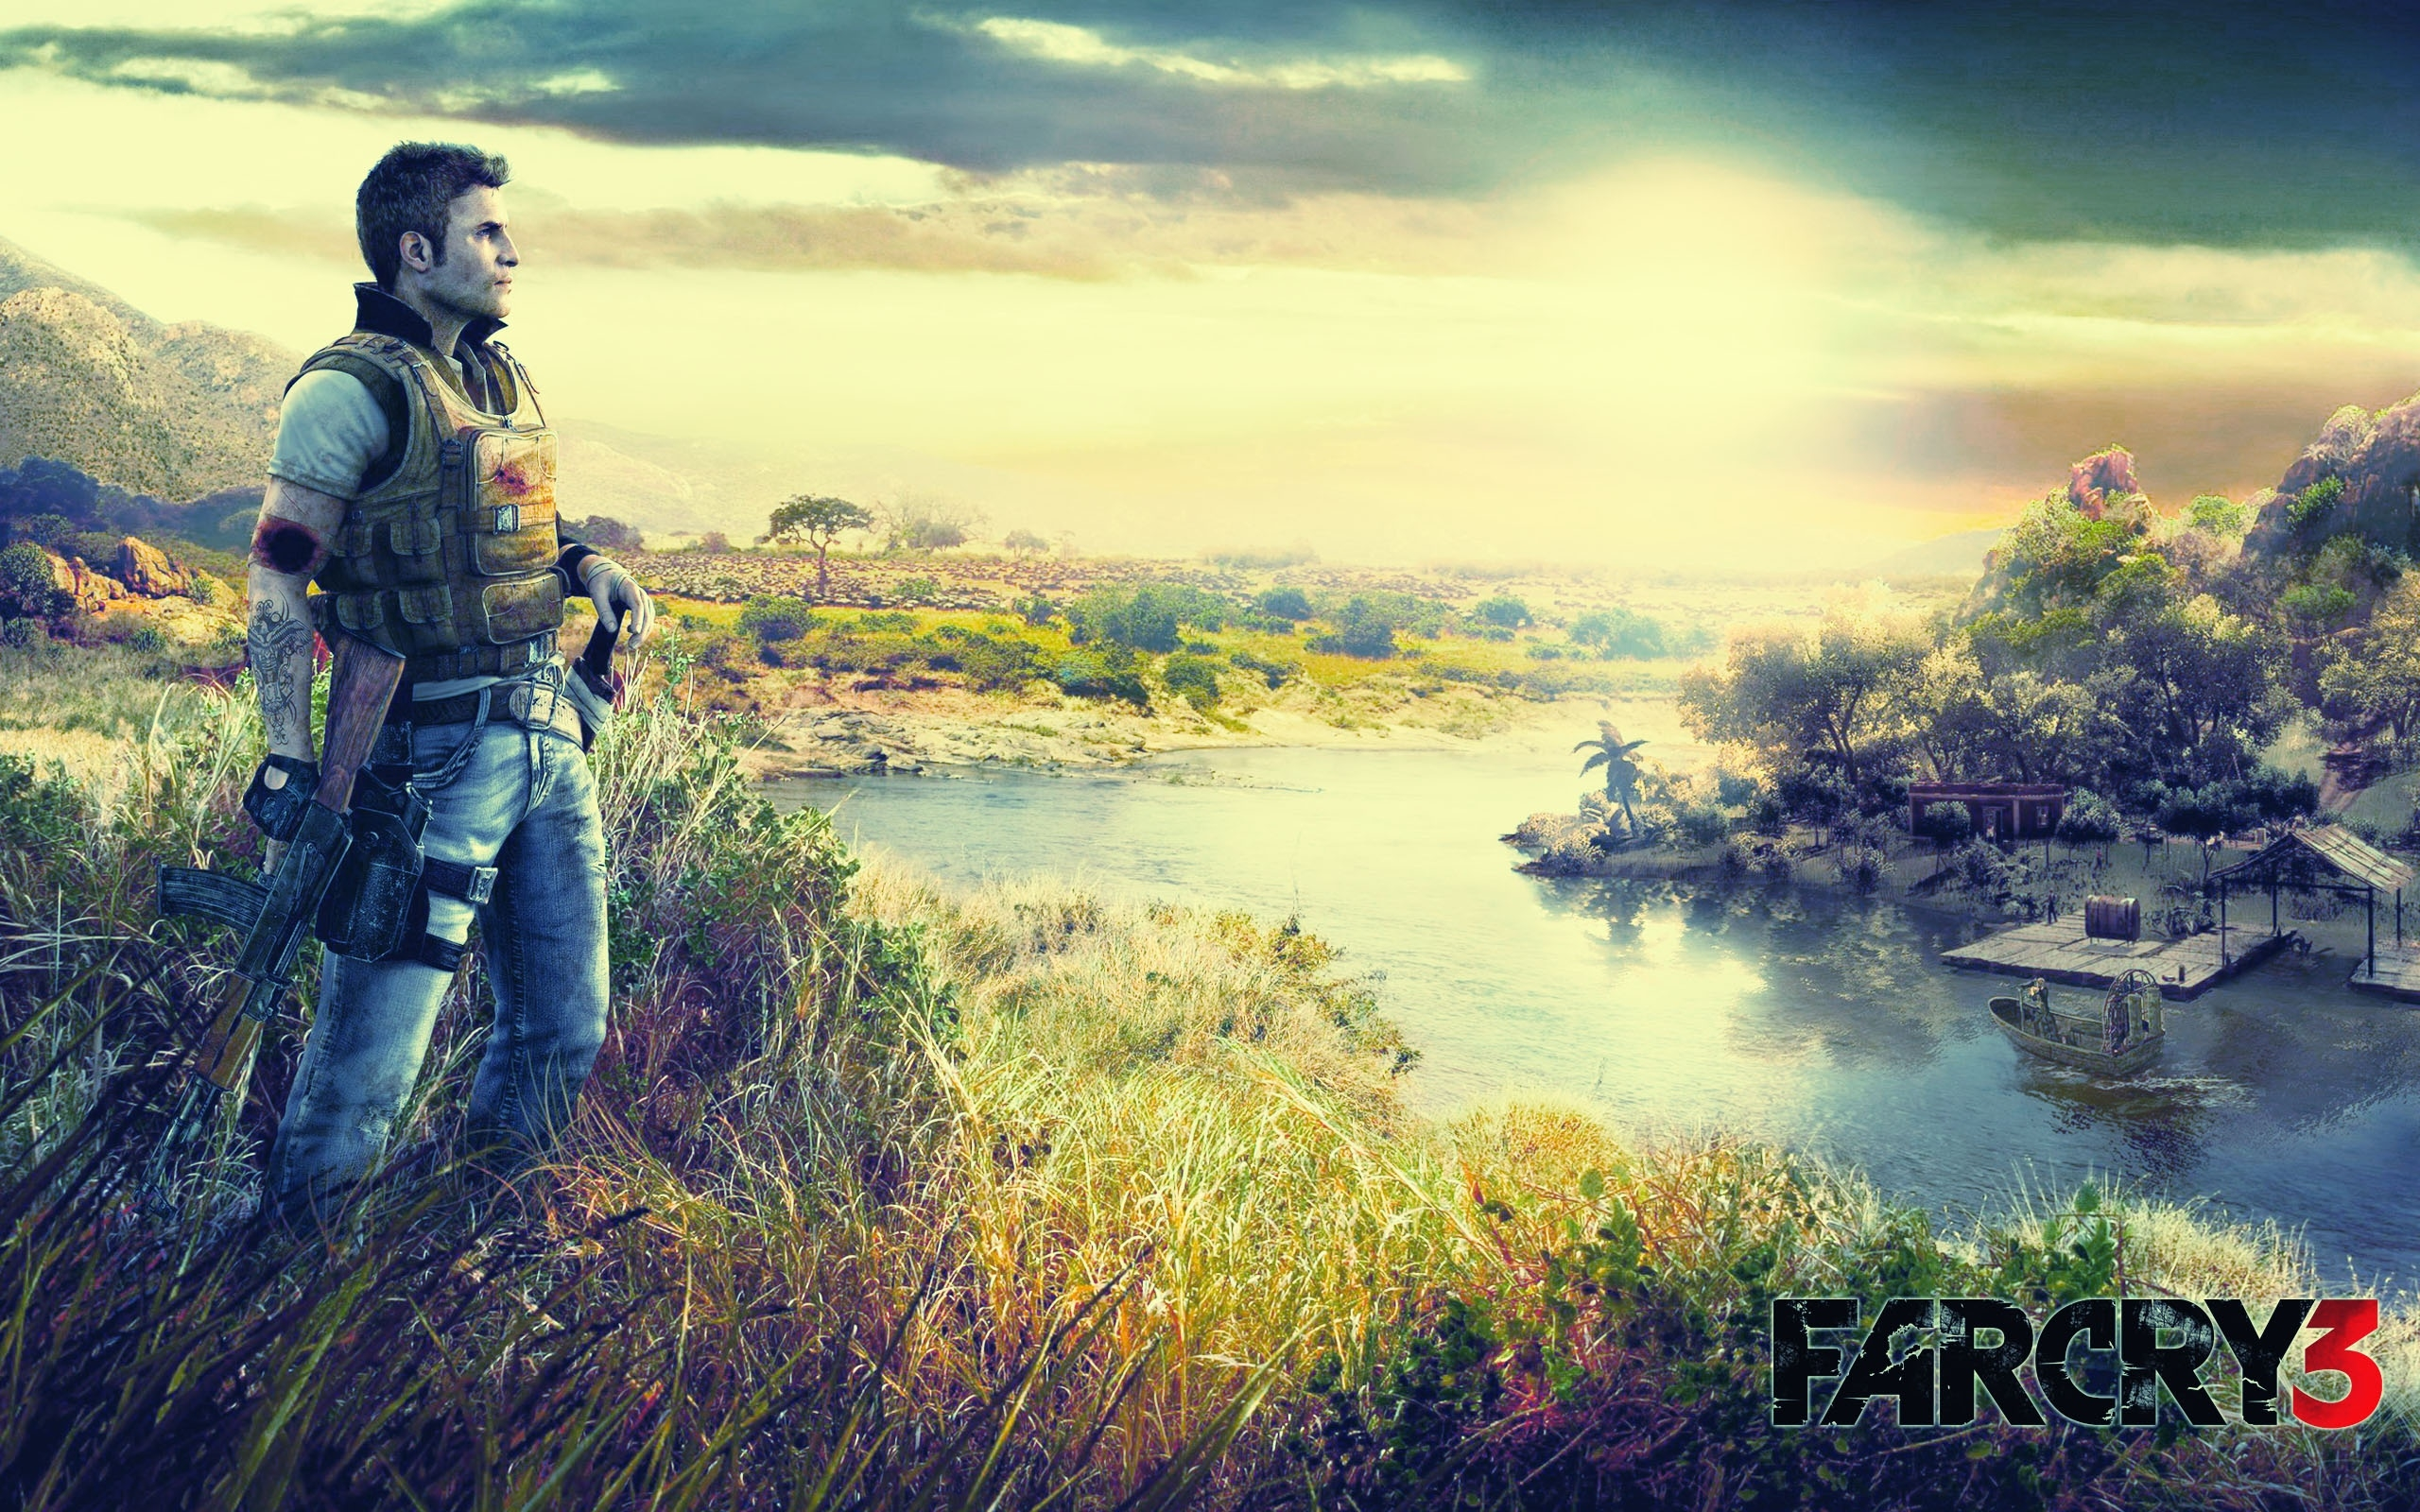 Far cry 3 wallpapers best wallpapers for Wallpaper three